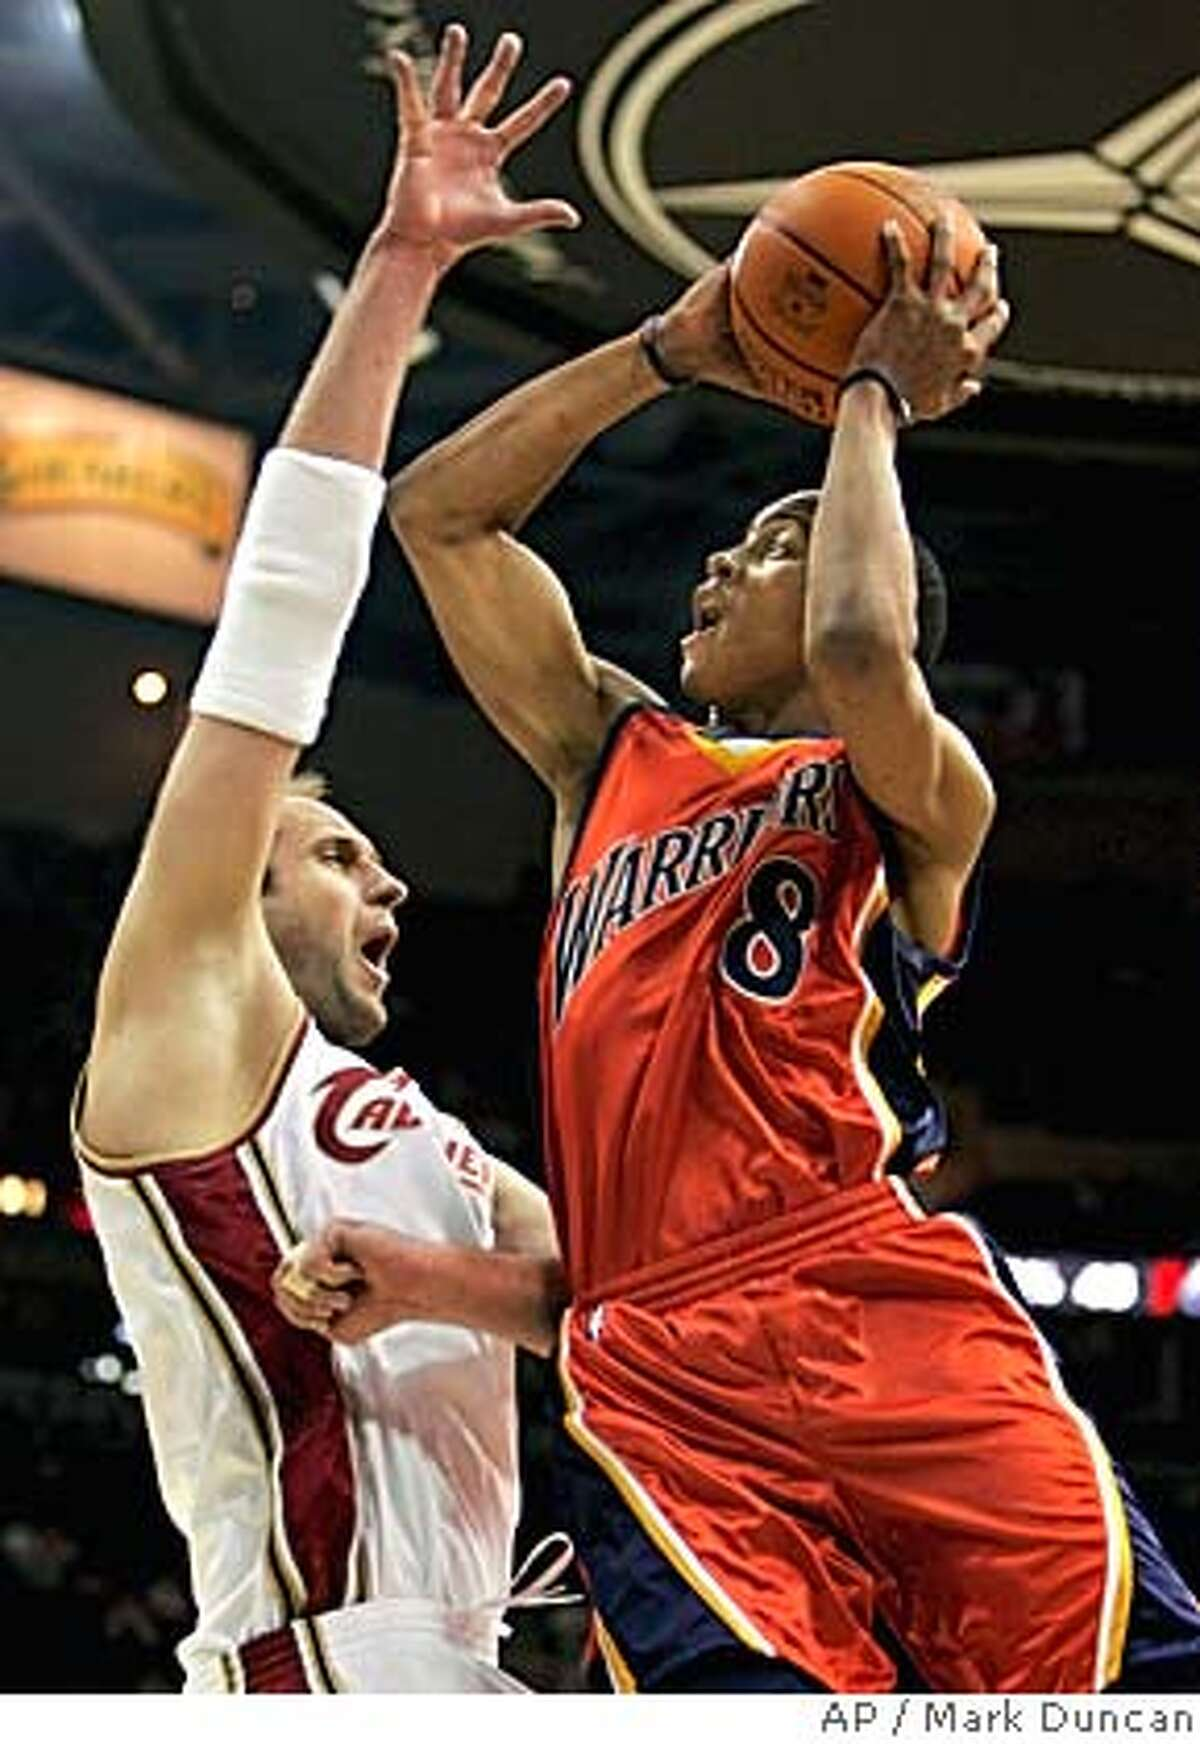 Golden State Warriors' Monta Ellis, right, shoots over Cleveland Cavaliers' Zydrunas Ilgauskas, of Lithuania, during the first quarter of an NBA basketball game, Tuesday, Jan. 30, 2007, in Cleveland. (AP Photo/Mark Duncan)